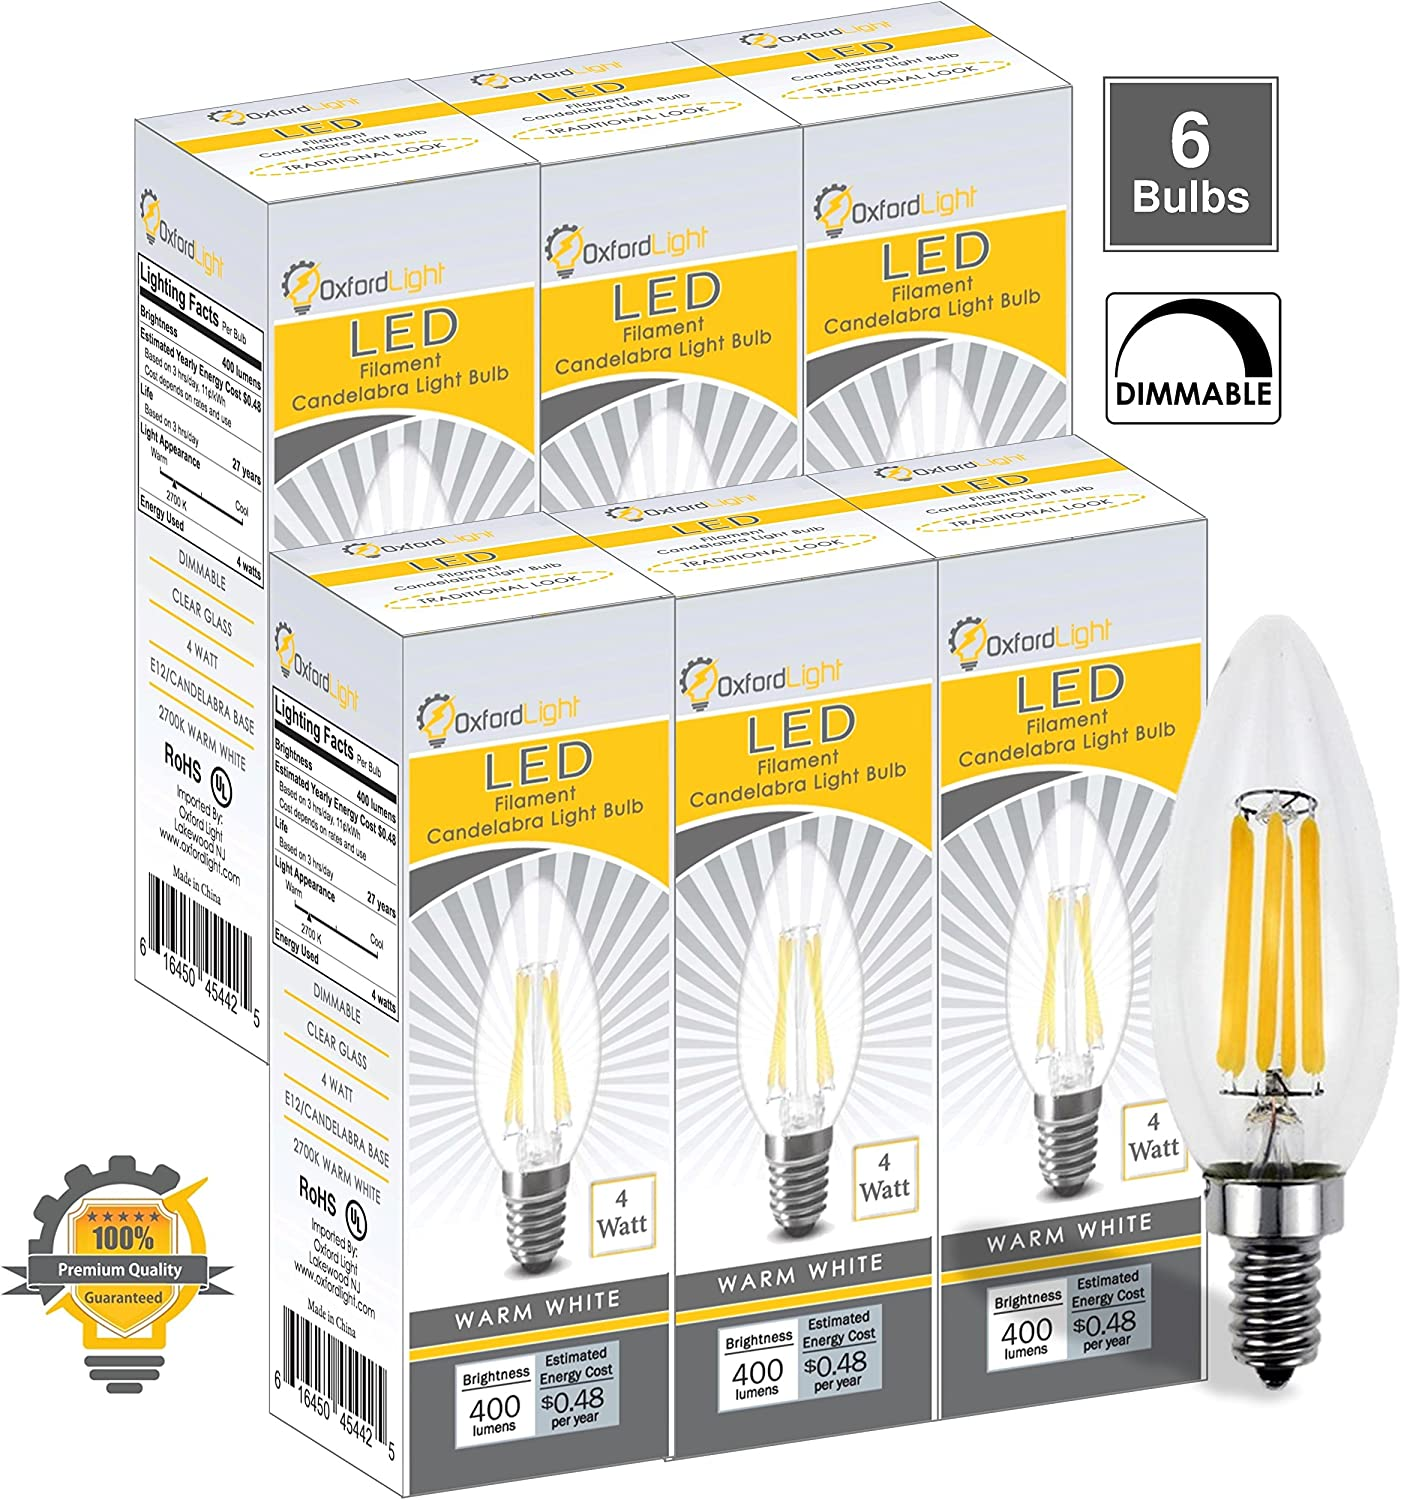 6-Pack 40W Incandescent Equivalent E12 Base LED Chandelier Bulbs B10 Torpedo Shape Oxford Light 4W 400LM Dimmable LED Candelabra Bulb 2700K Warm White